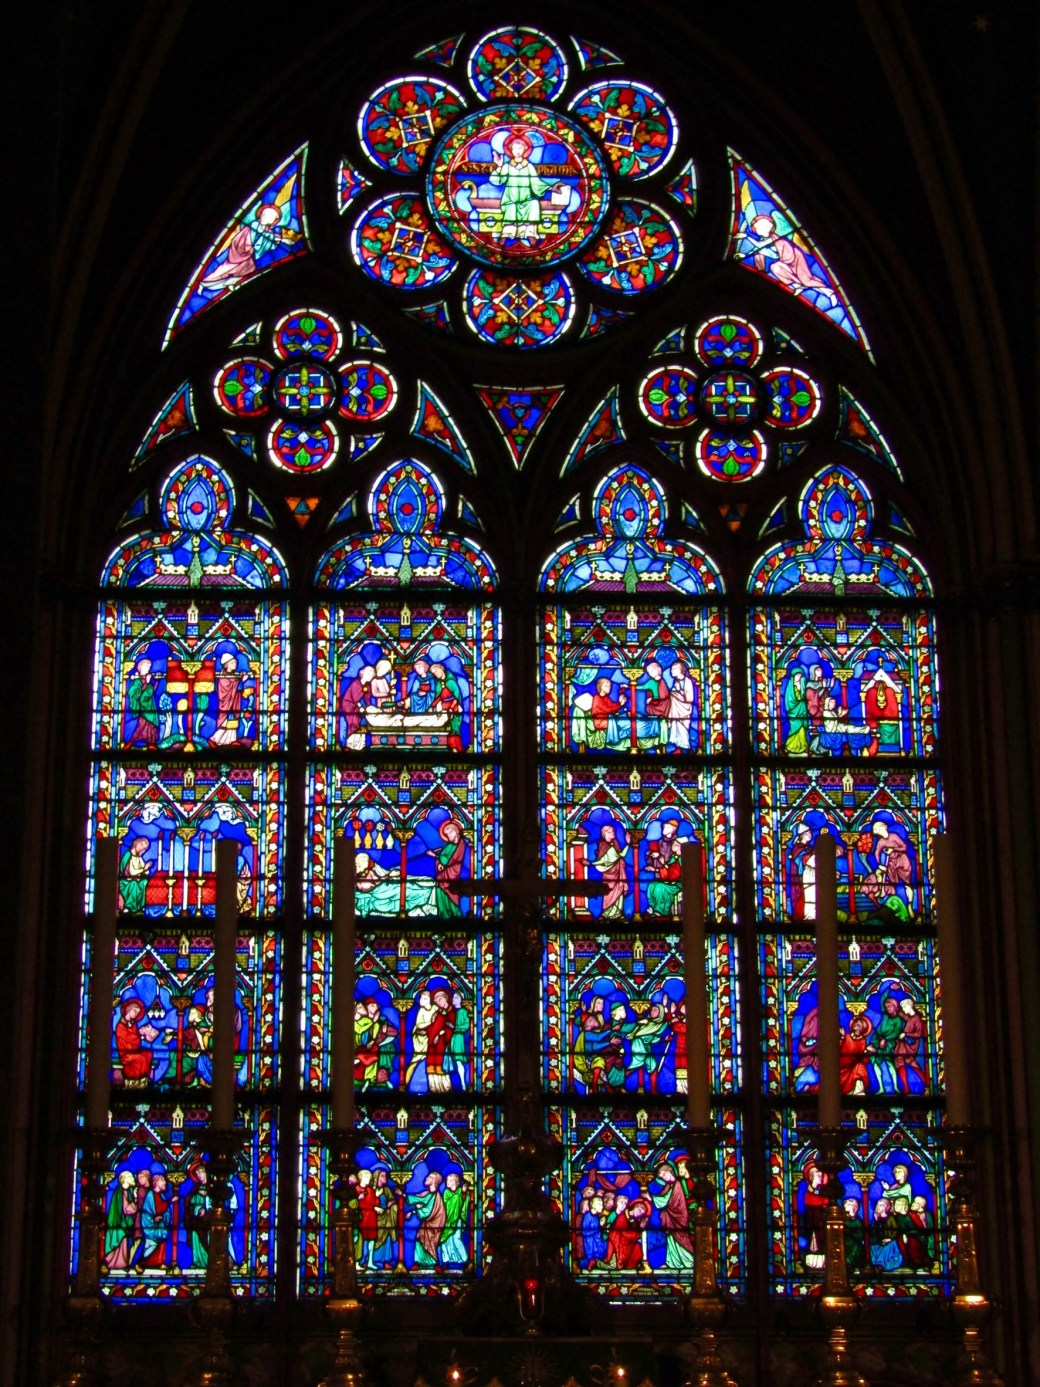 One of the many stained glass windows depicting various biblical scenes inside the cathedral at Notre-Dame.